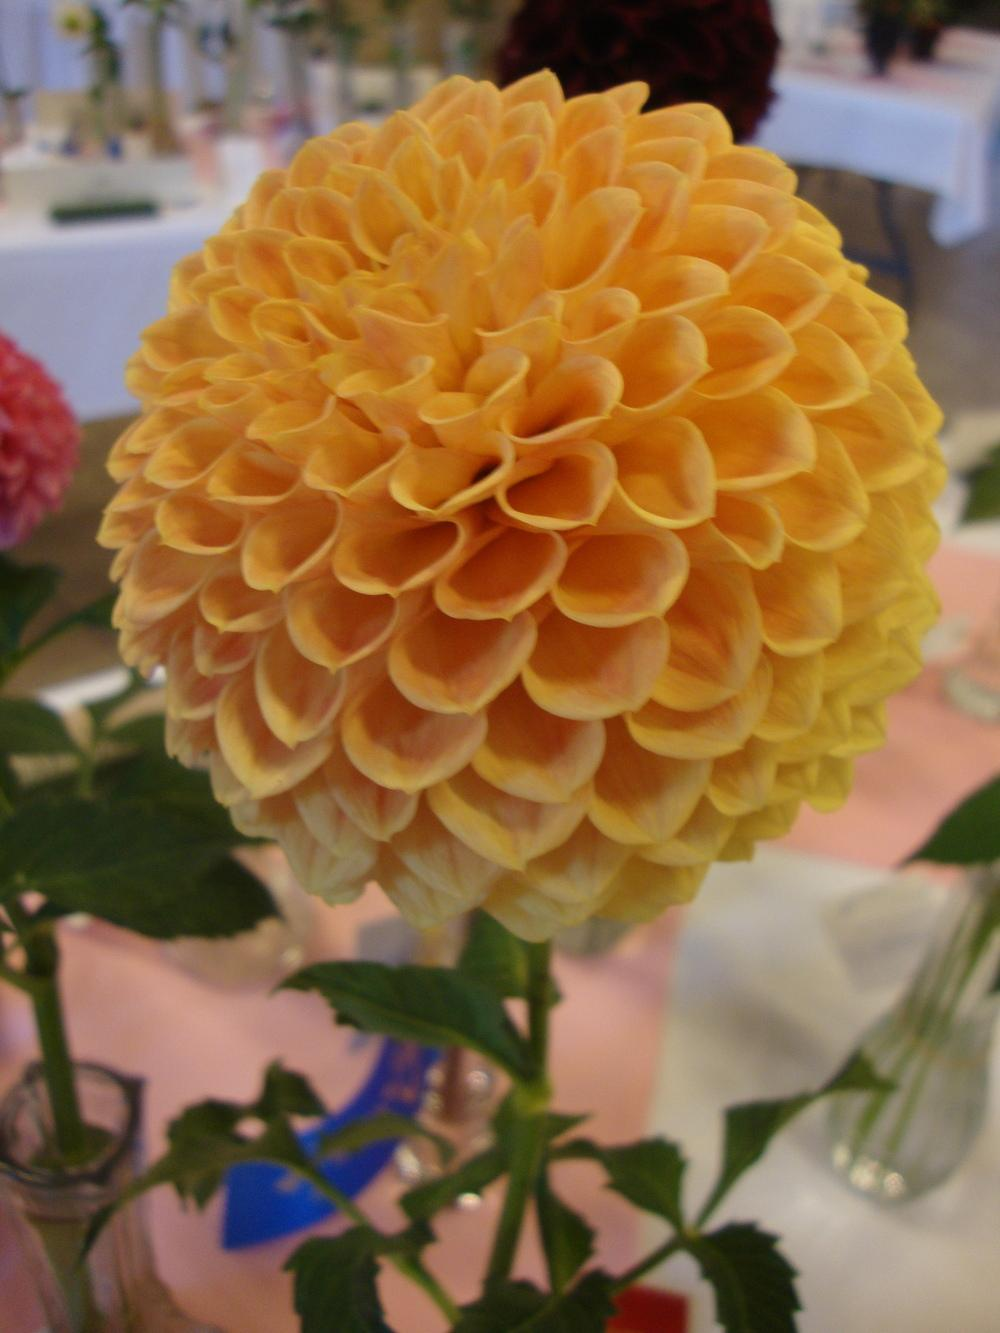 Photo of Dahlias (Dahlia) uploaded by Paul2032